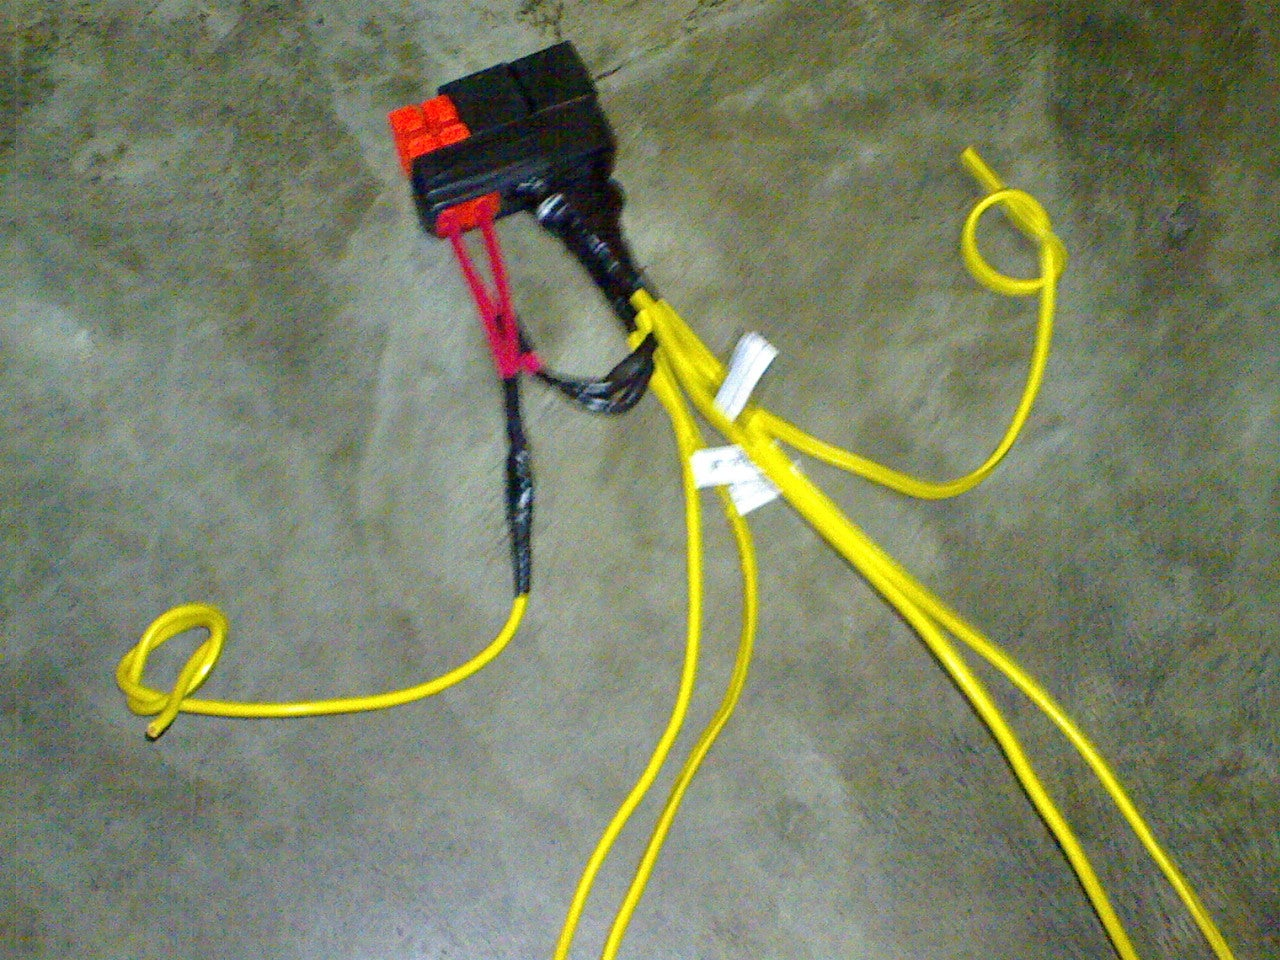 Wondrous How To Make A Headlight Wiring Relay Kit 3 Steps Wiring Cloud Hisonuggs Outletorg